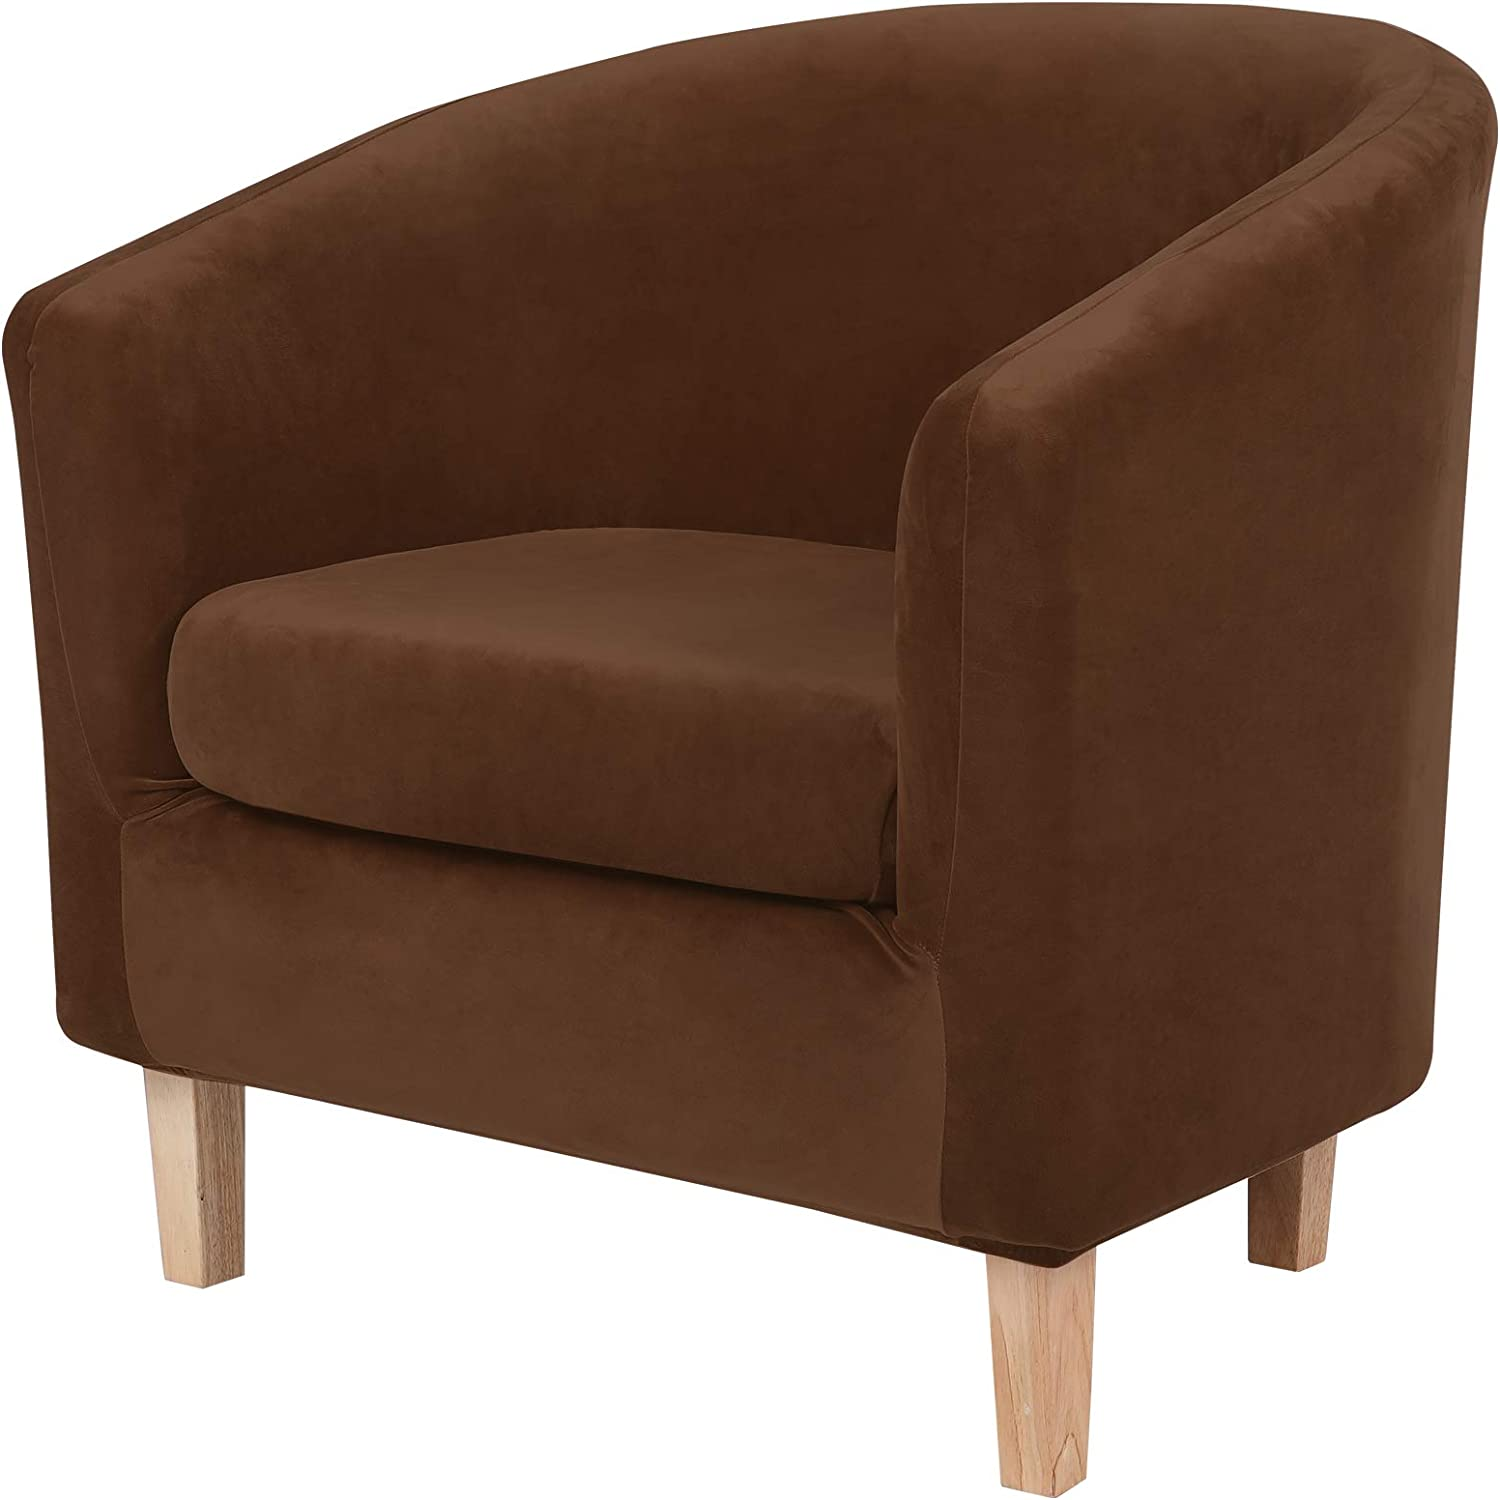 hyha 2 Pieces Velvet Tub Chair Covers with Cushion Cover, Removable Stretch Club Chair Slipcover for IKEA Tullsta, Armchair Furniture Protector for Living Room, Brown